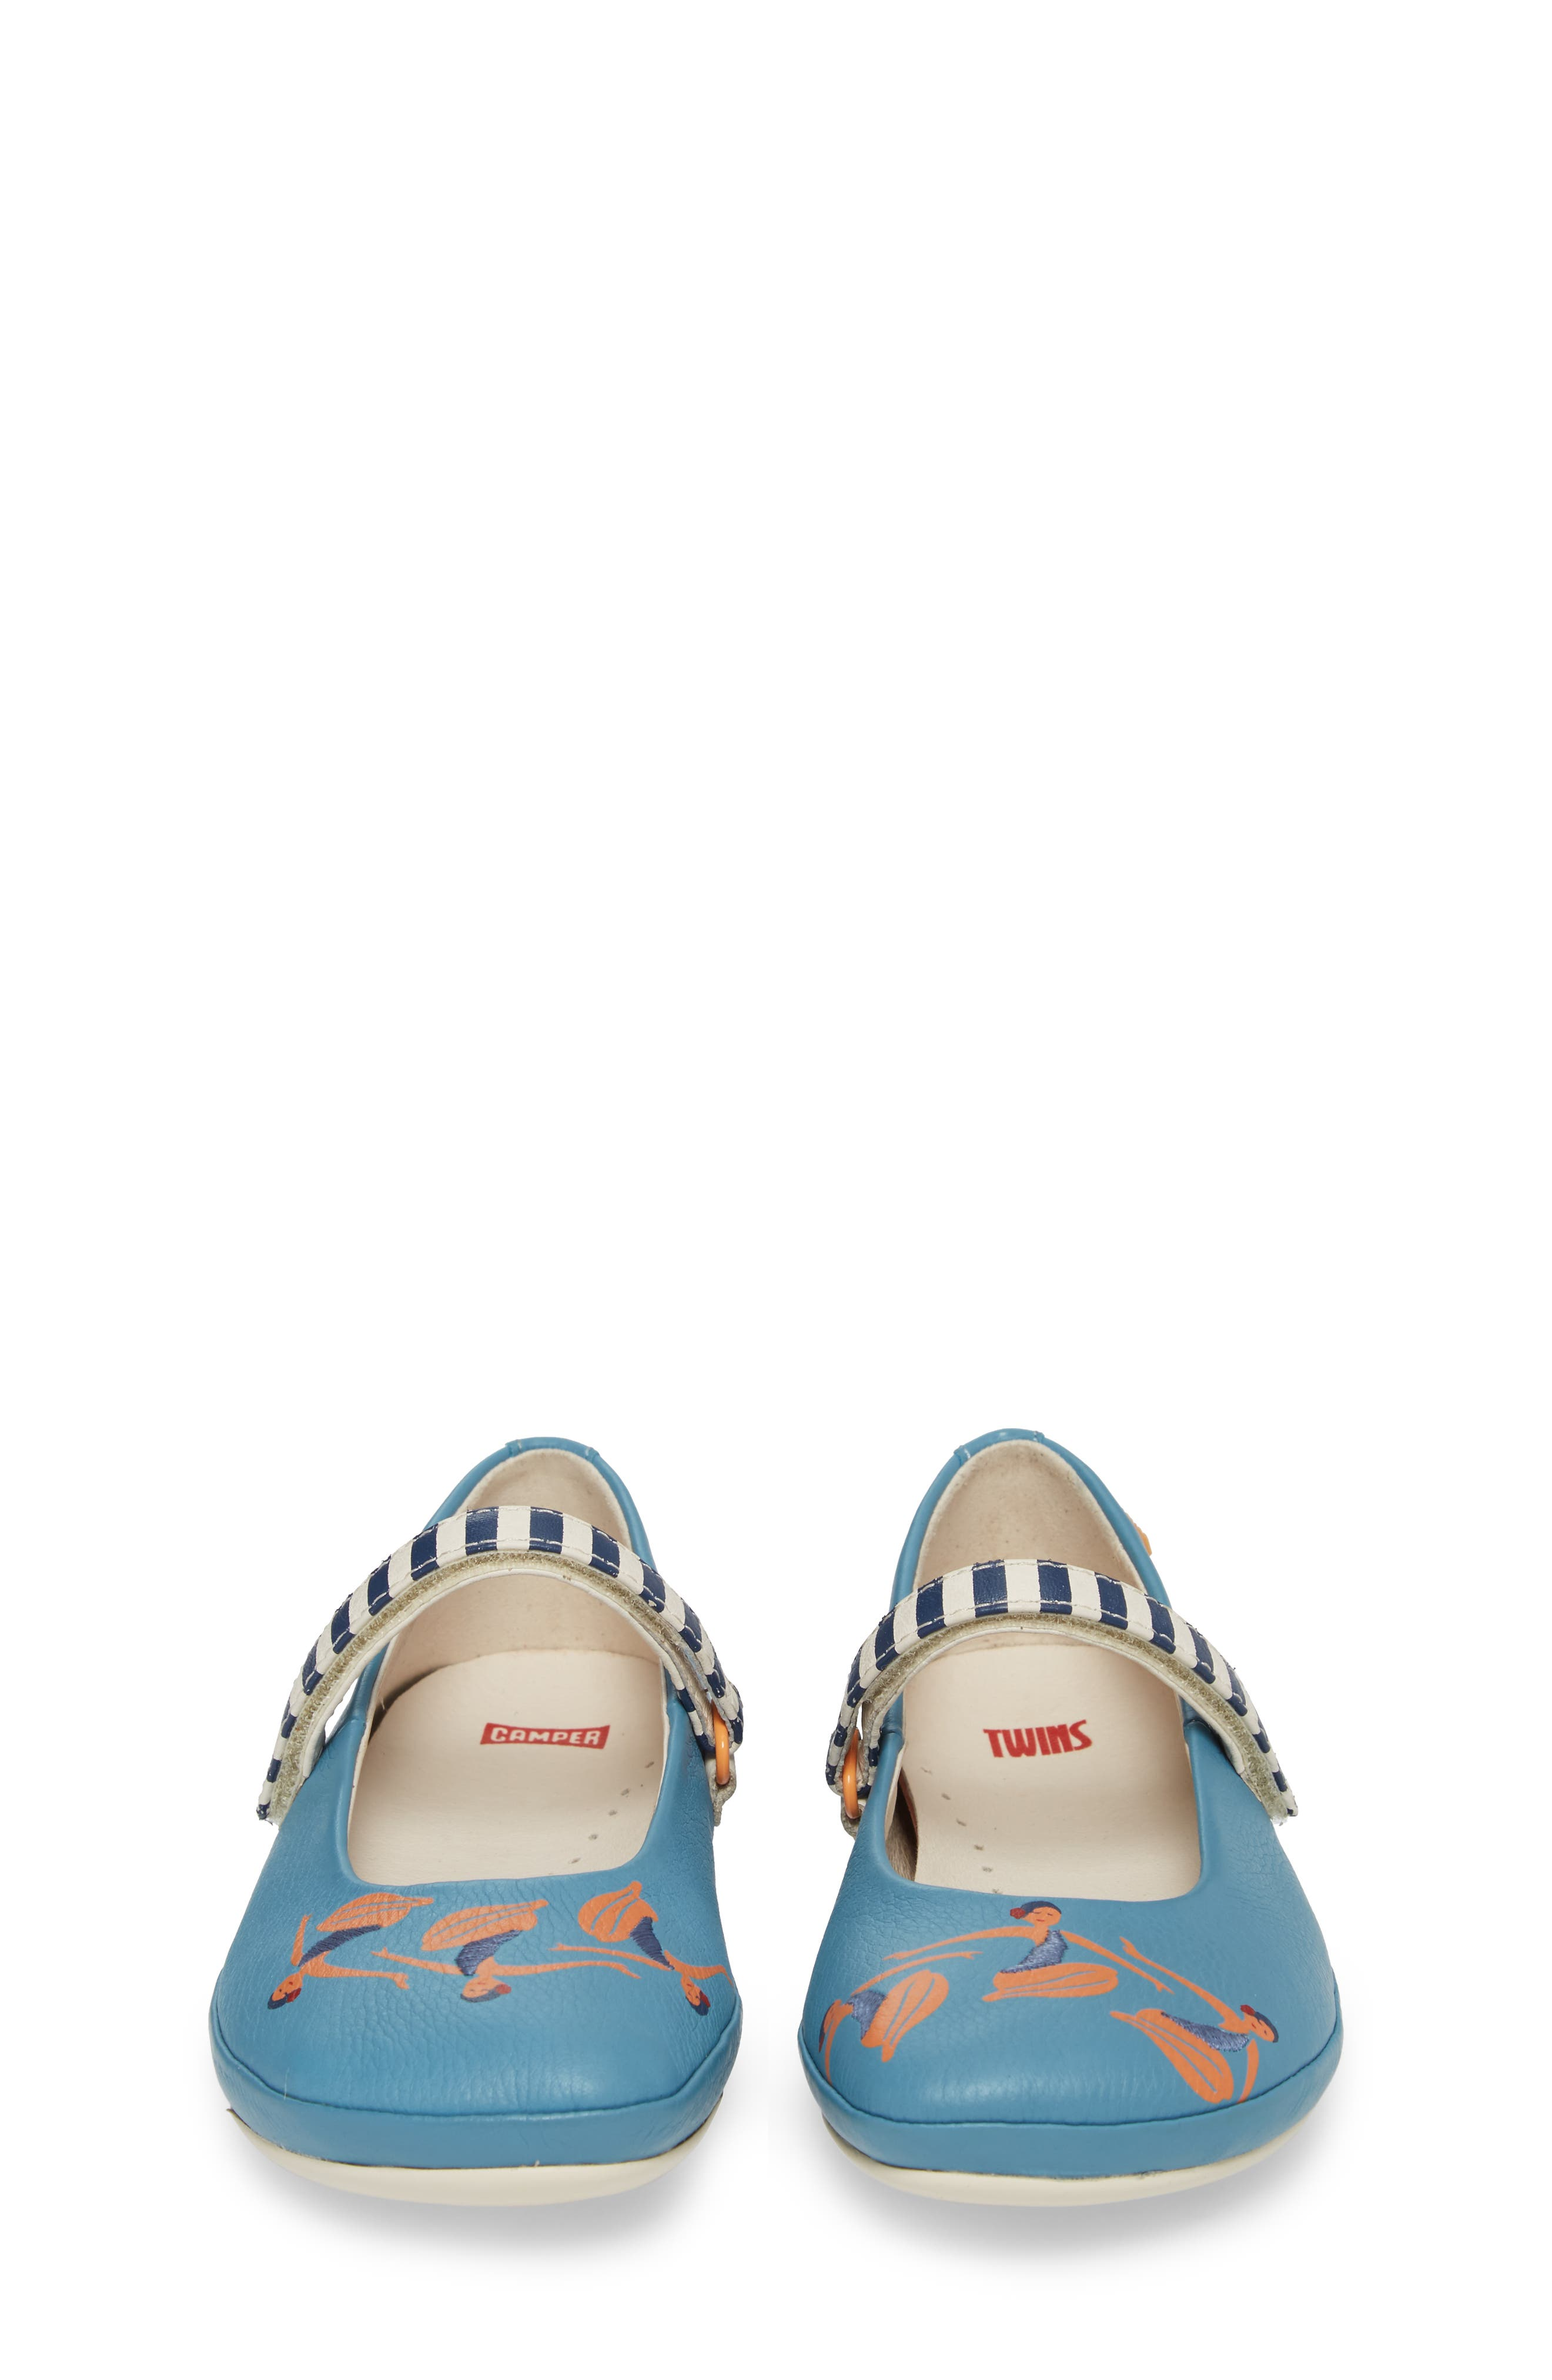 Twins Mary Jane Flat,                             Alternate thumbnail 5, color,                             Blue